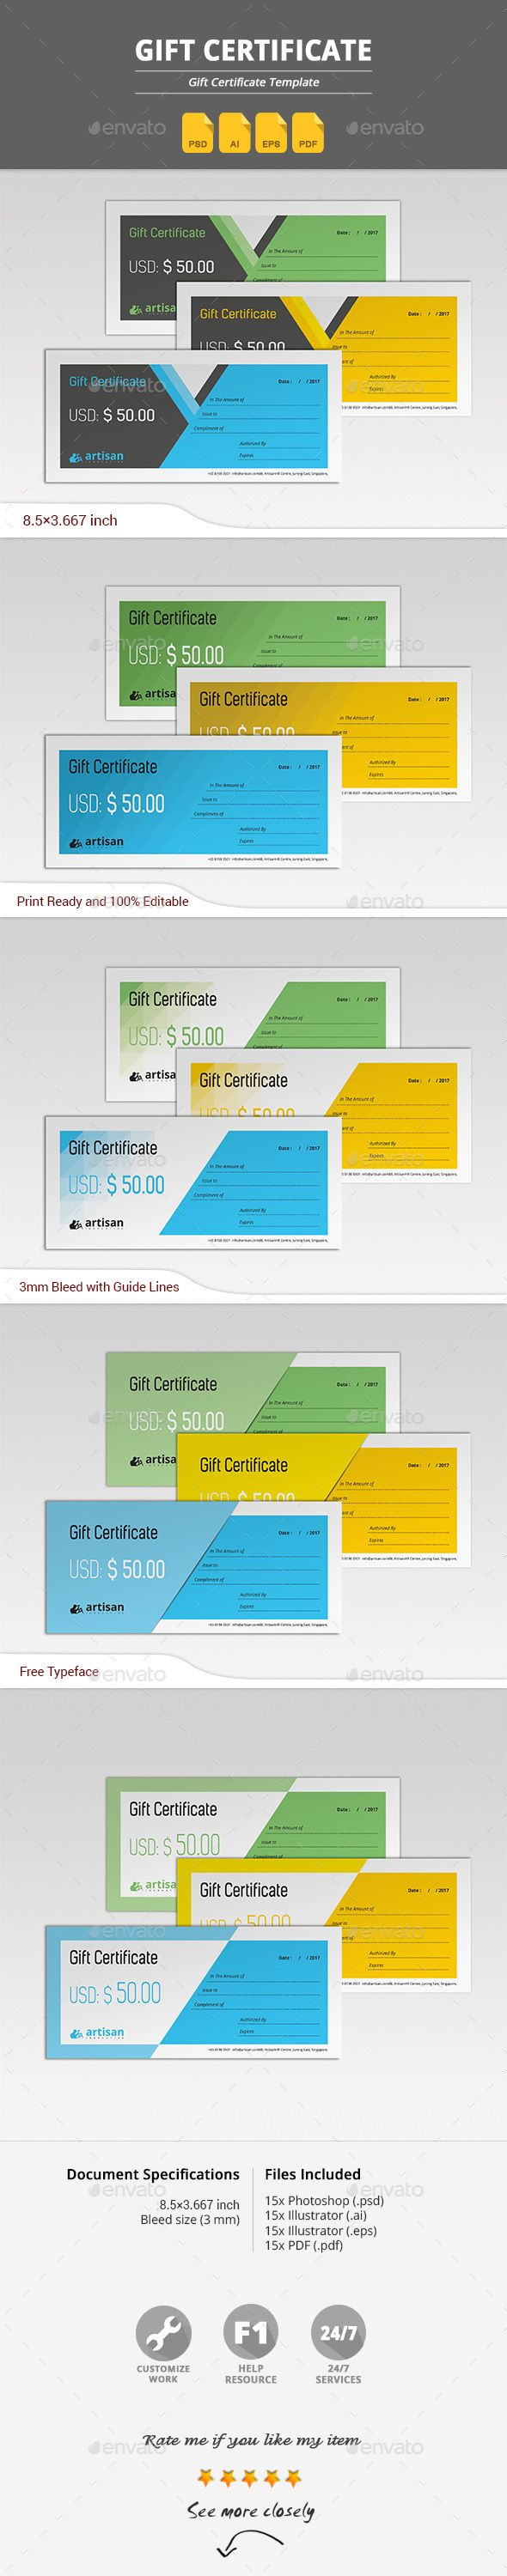 size of gift certificate